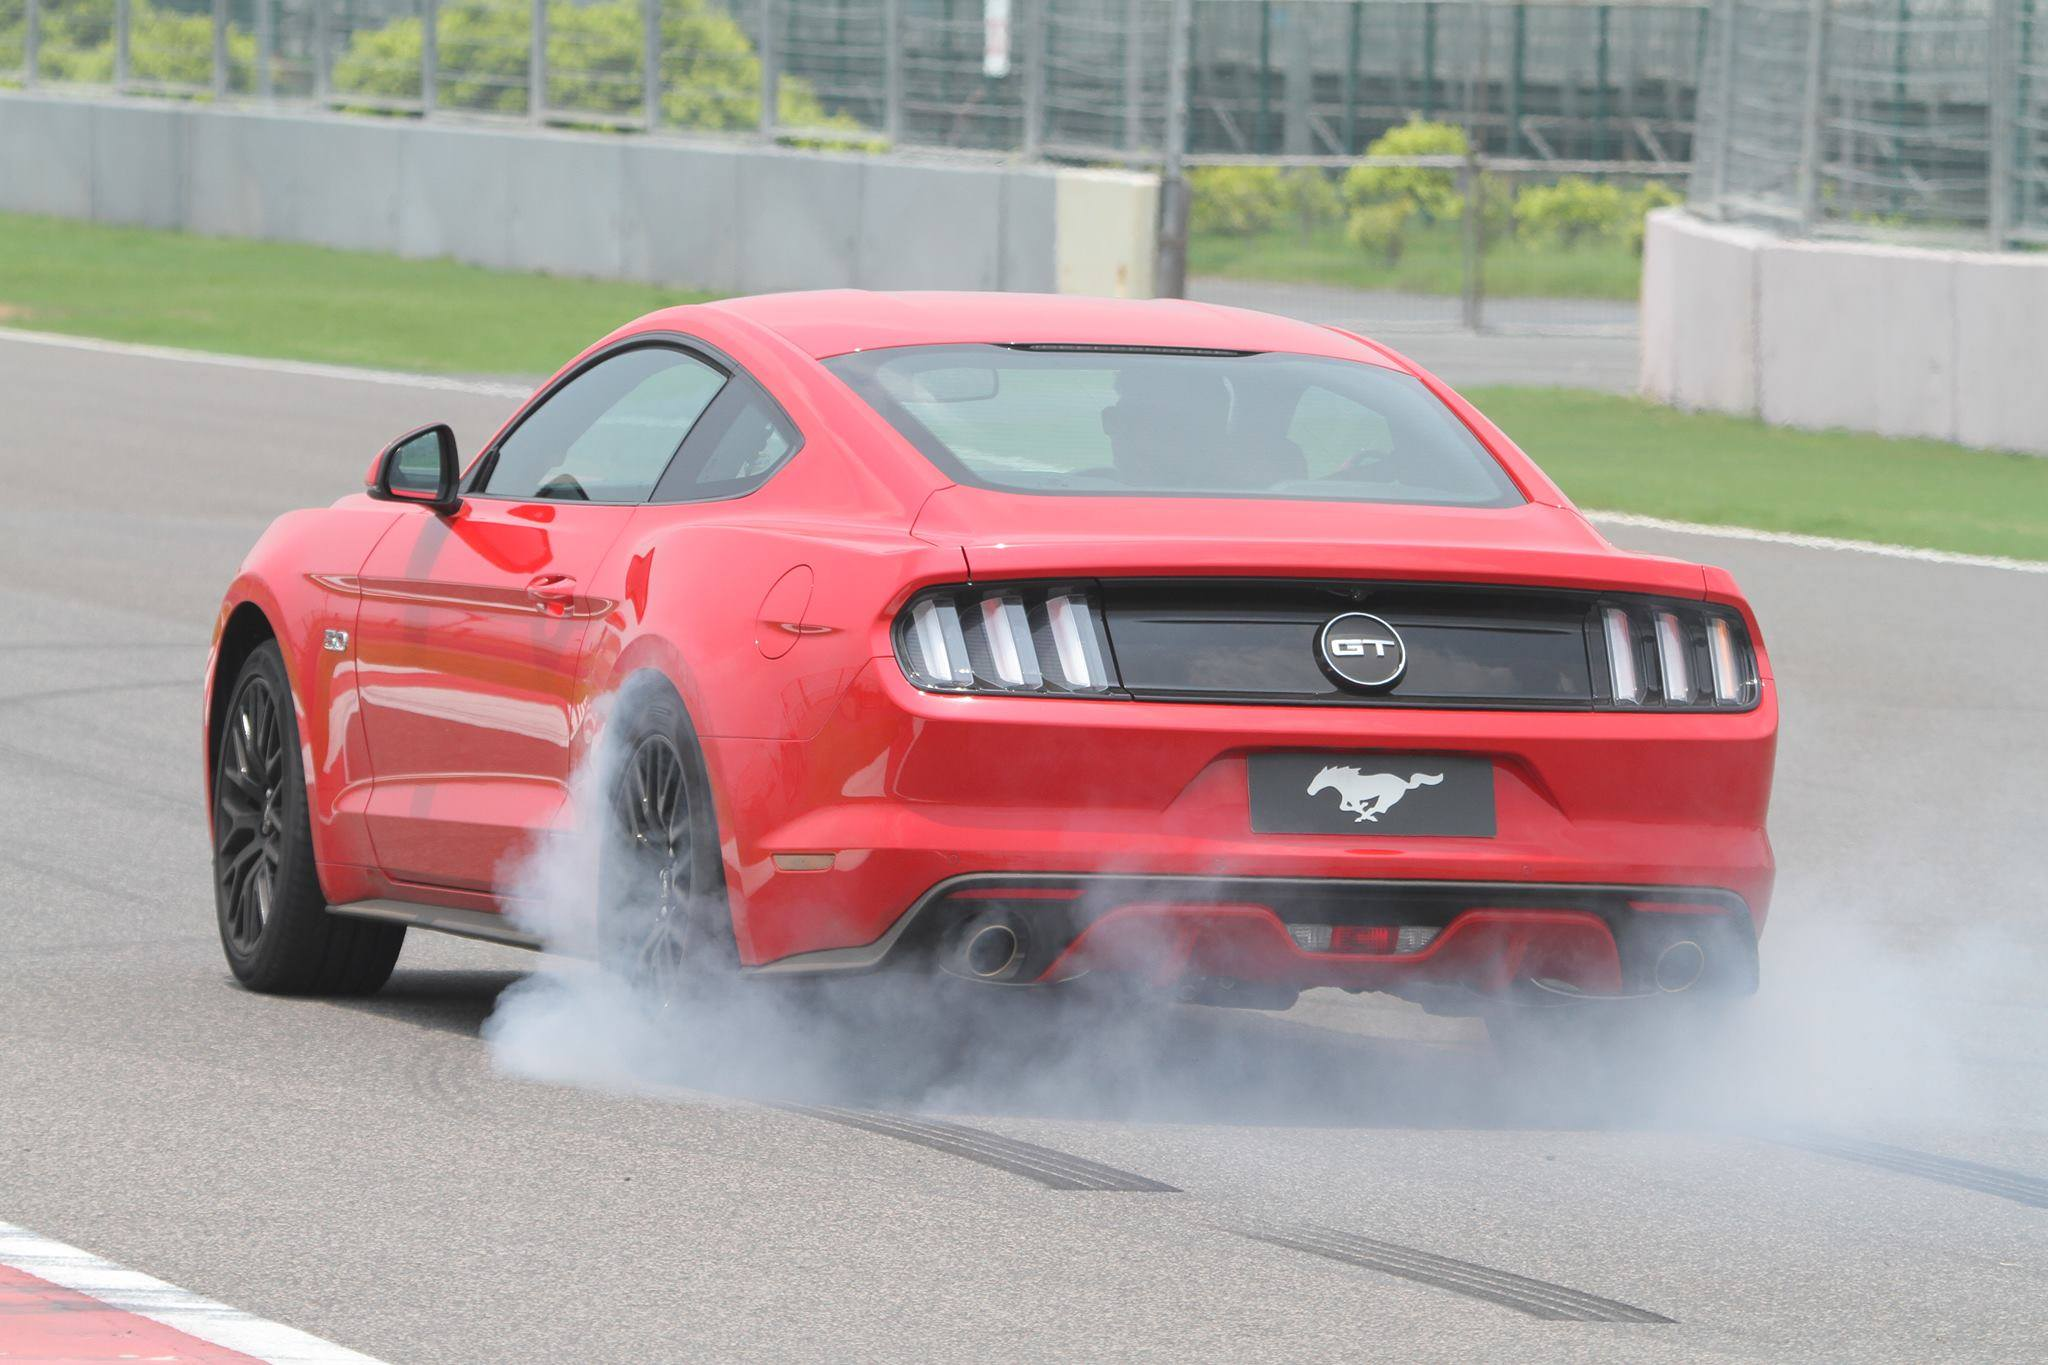 Ford Mustang Gt Makes Its Official Debut In India 5 0l V8 401hp Rs 65 Lakh